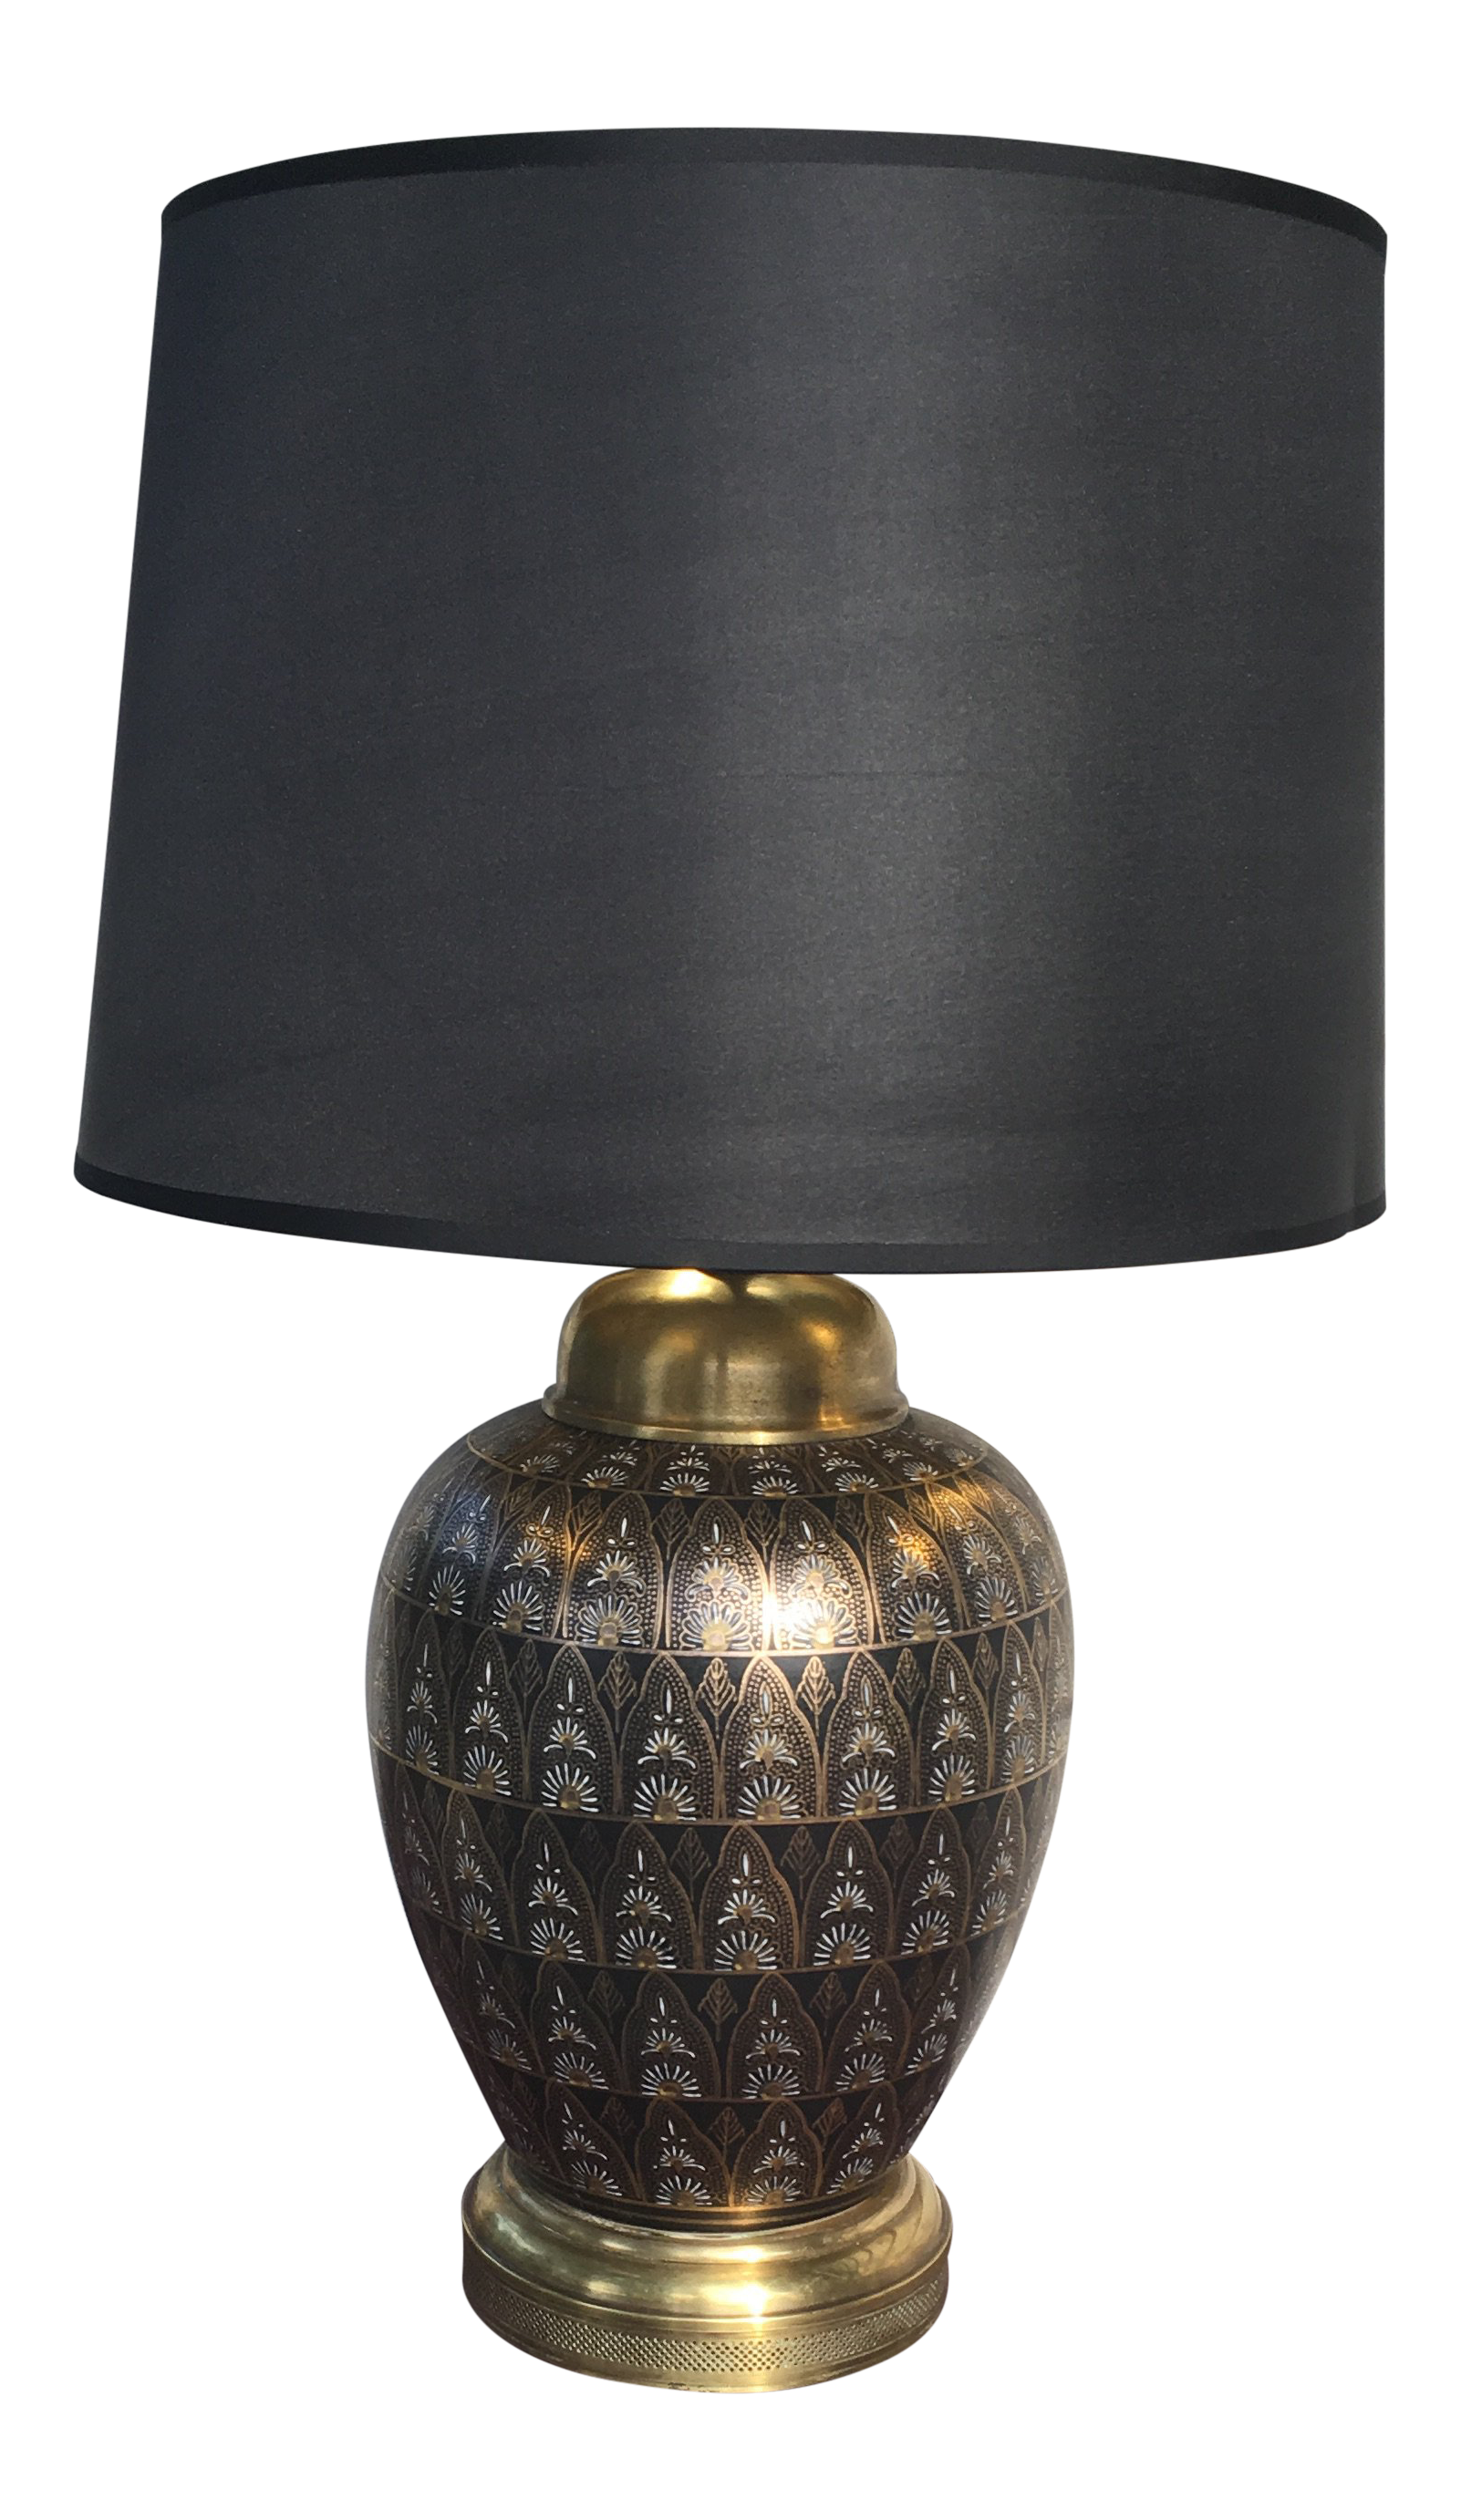 Wildwood Table Lamp   Image 1 Of 9